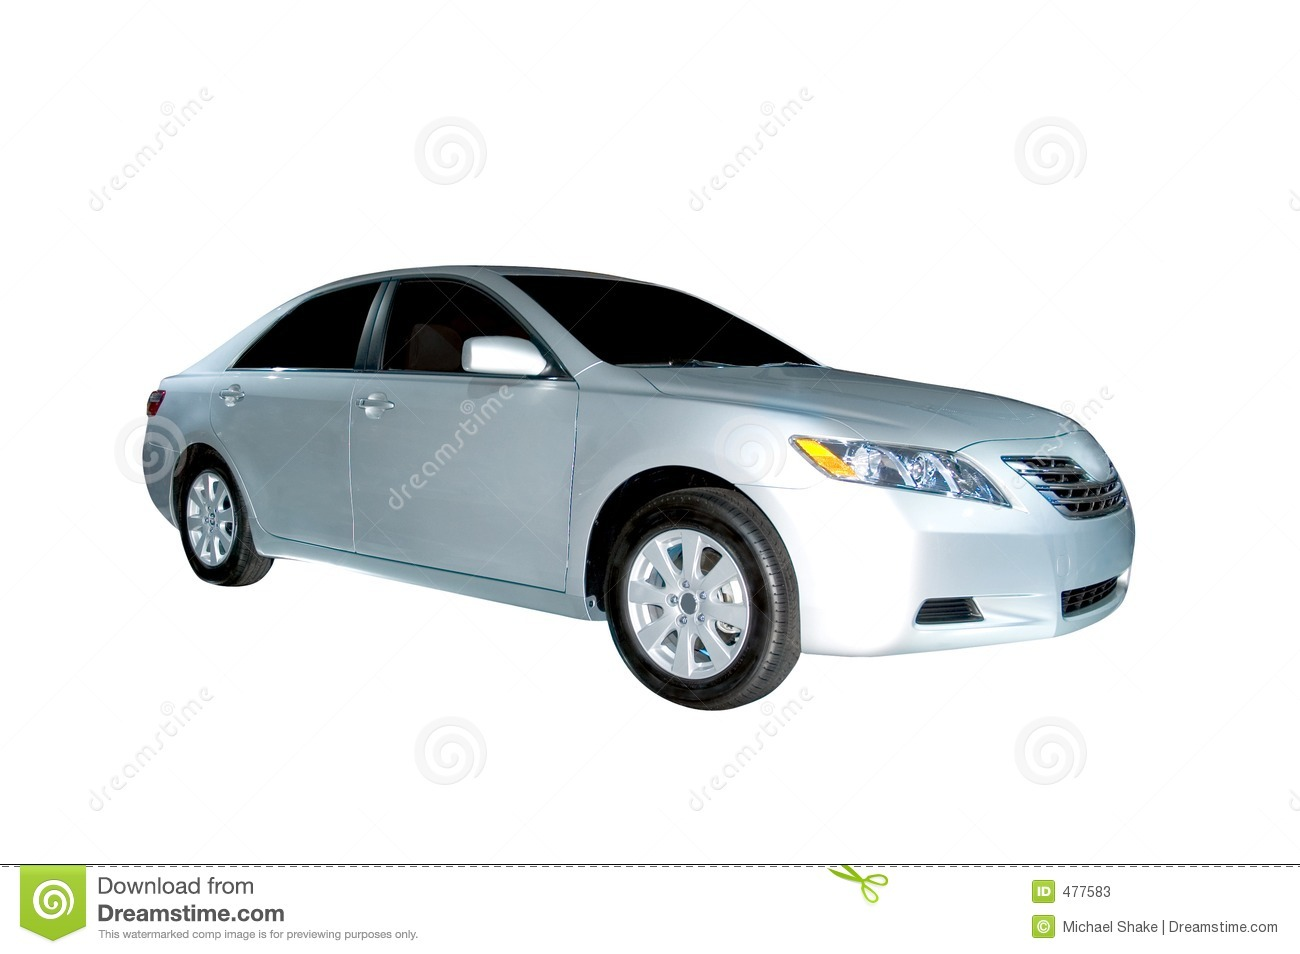 brand new toyota camry hybrid perbedaan grand avanza dan xenia model stock image of power electric 477583 a 2006 isolated on white background clipping path is included